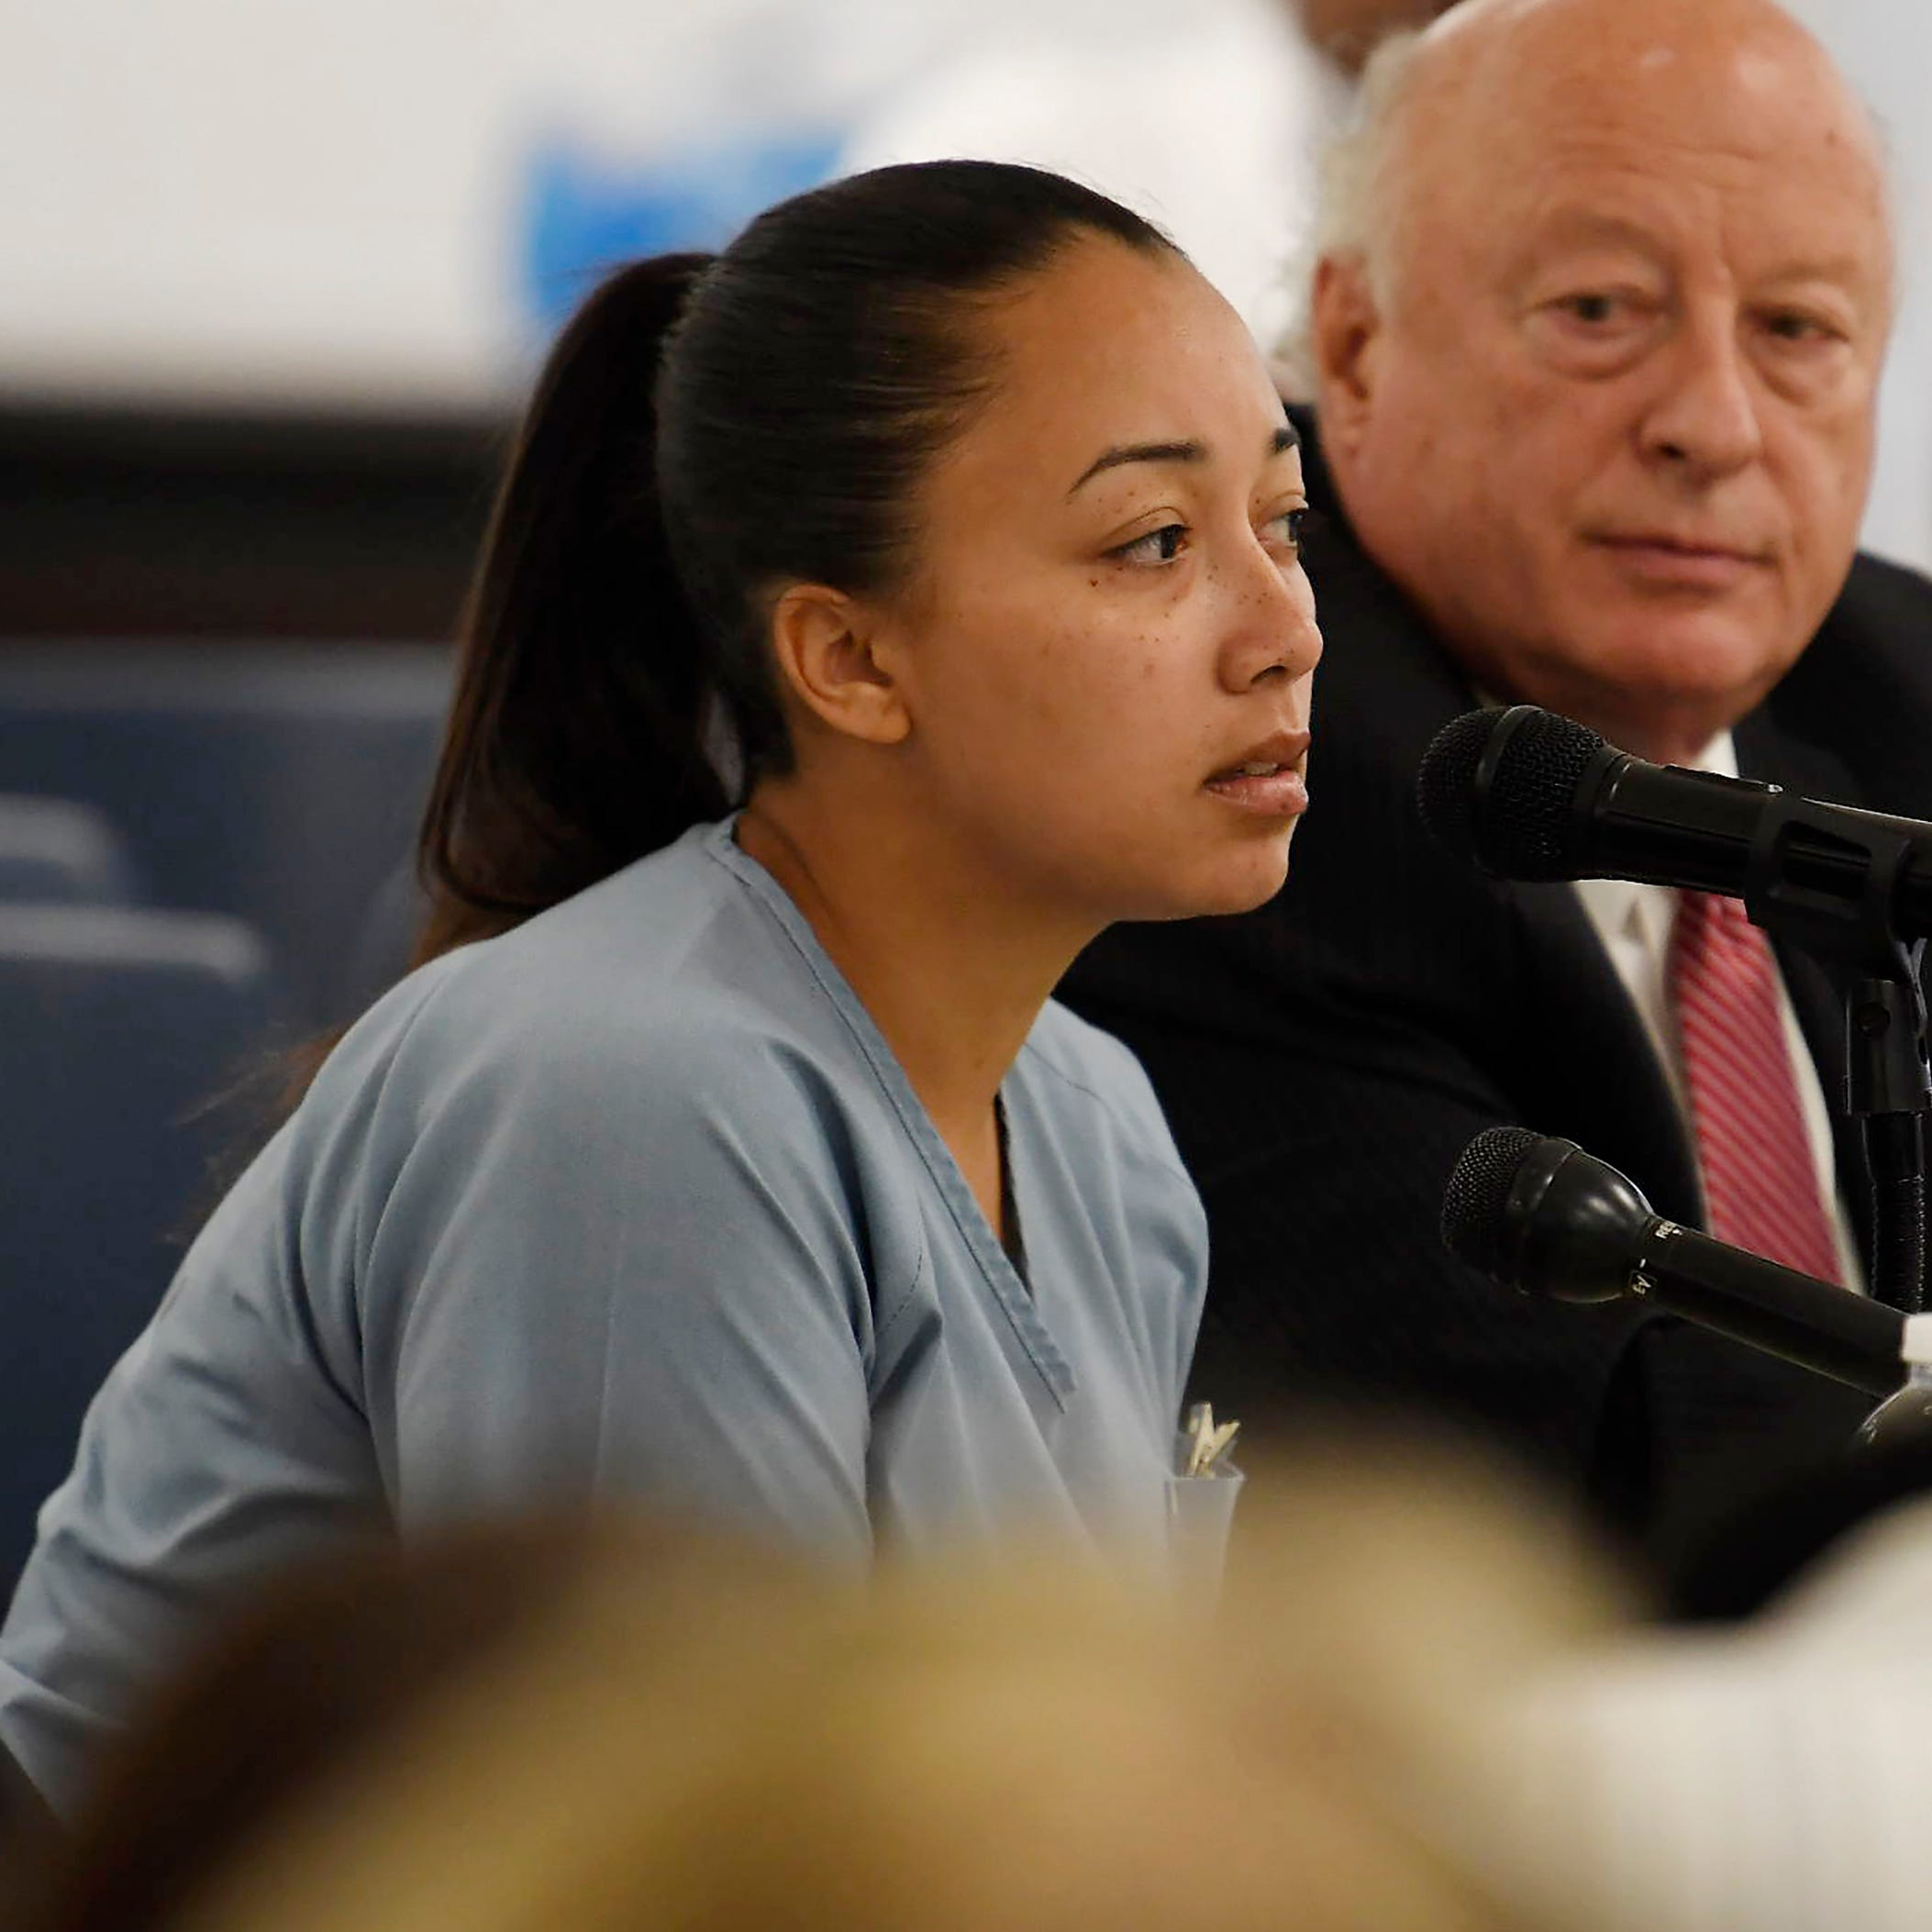 Cyntoia Brown case: Shelby County commissioners send letter to Gov. Haslam supporting clemency